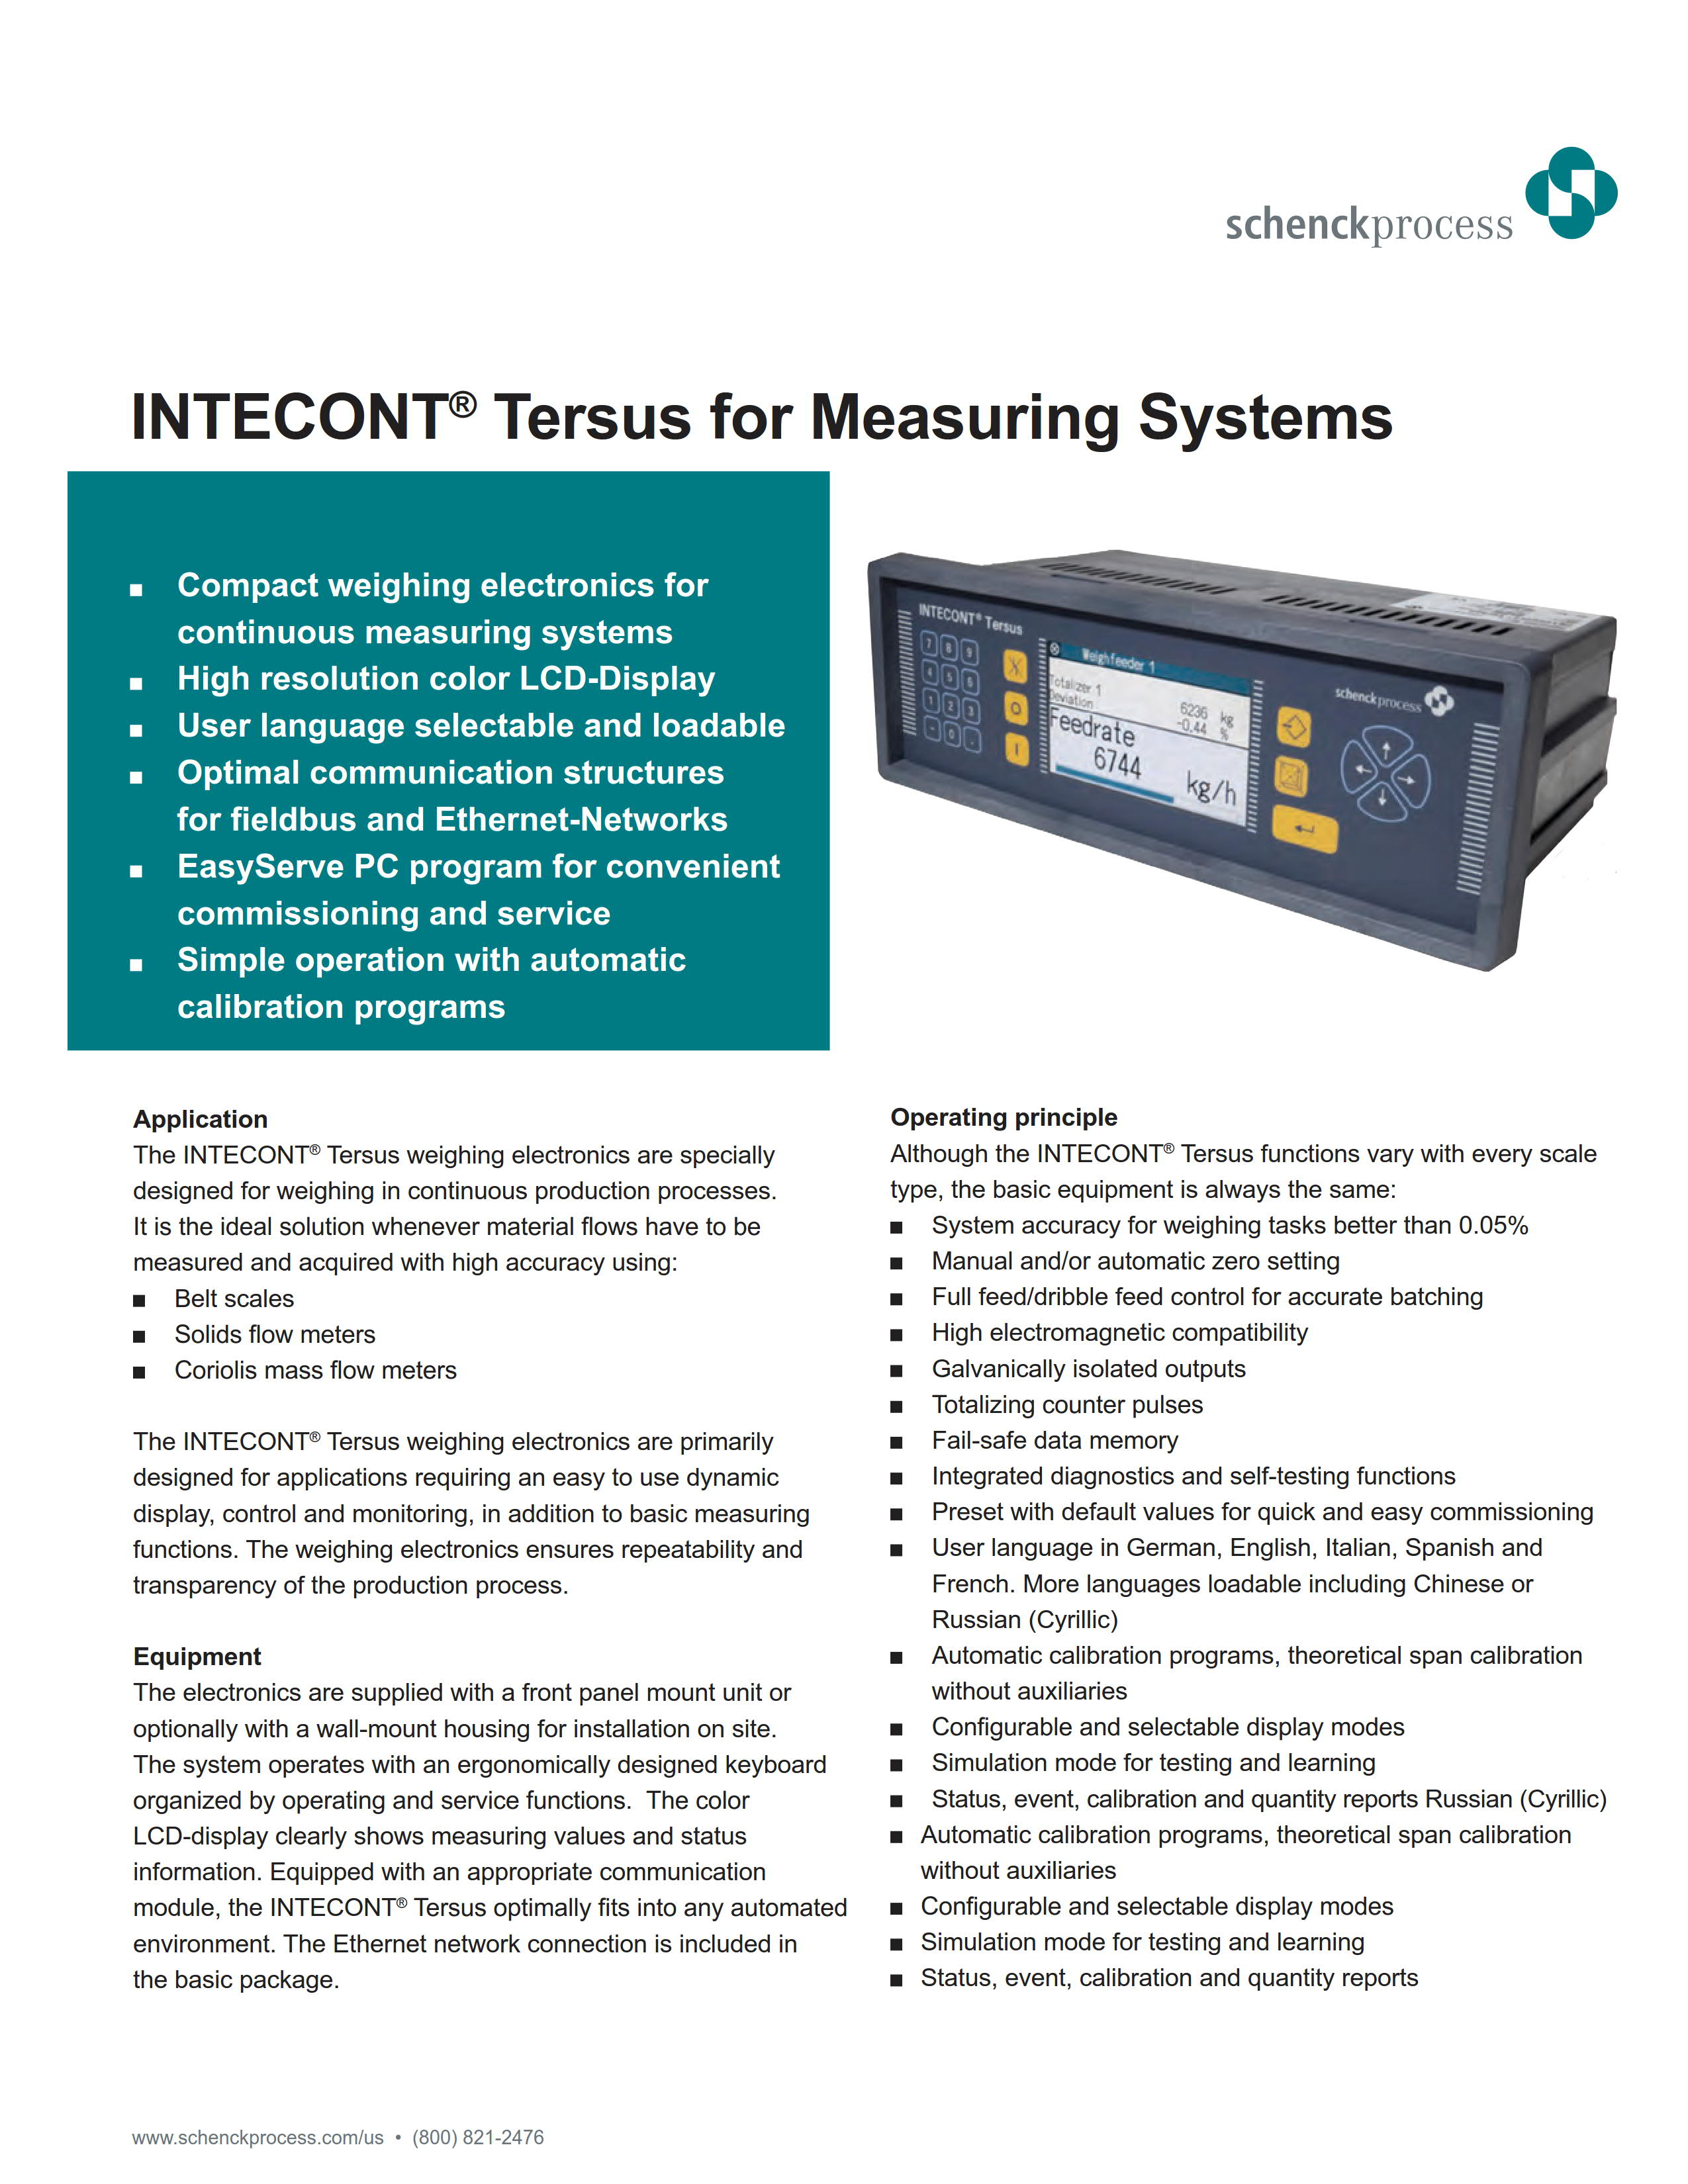 INTECONT Tersus For Measuring Systems